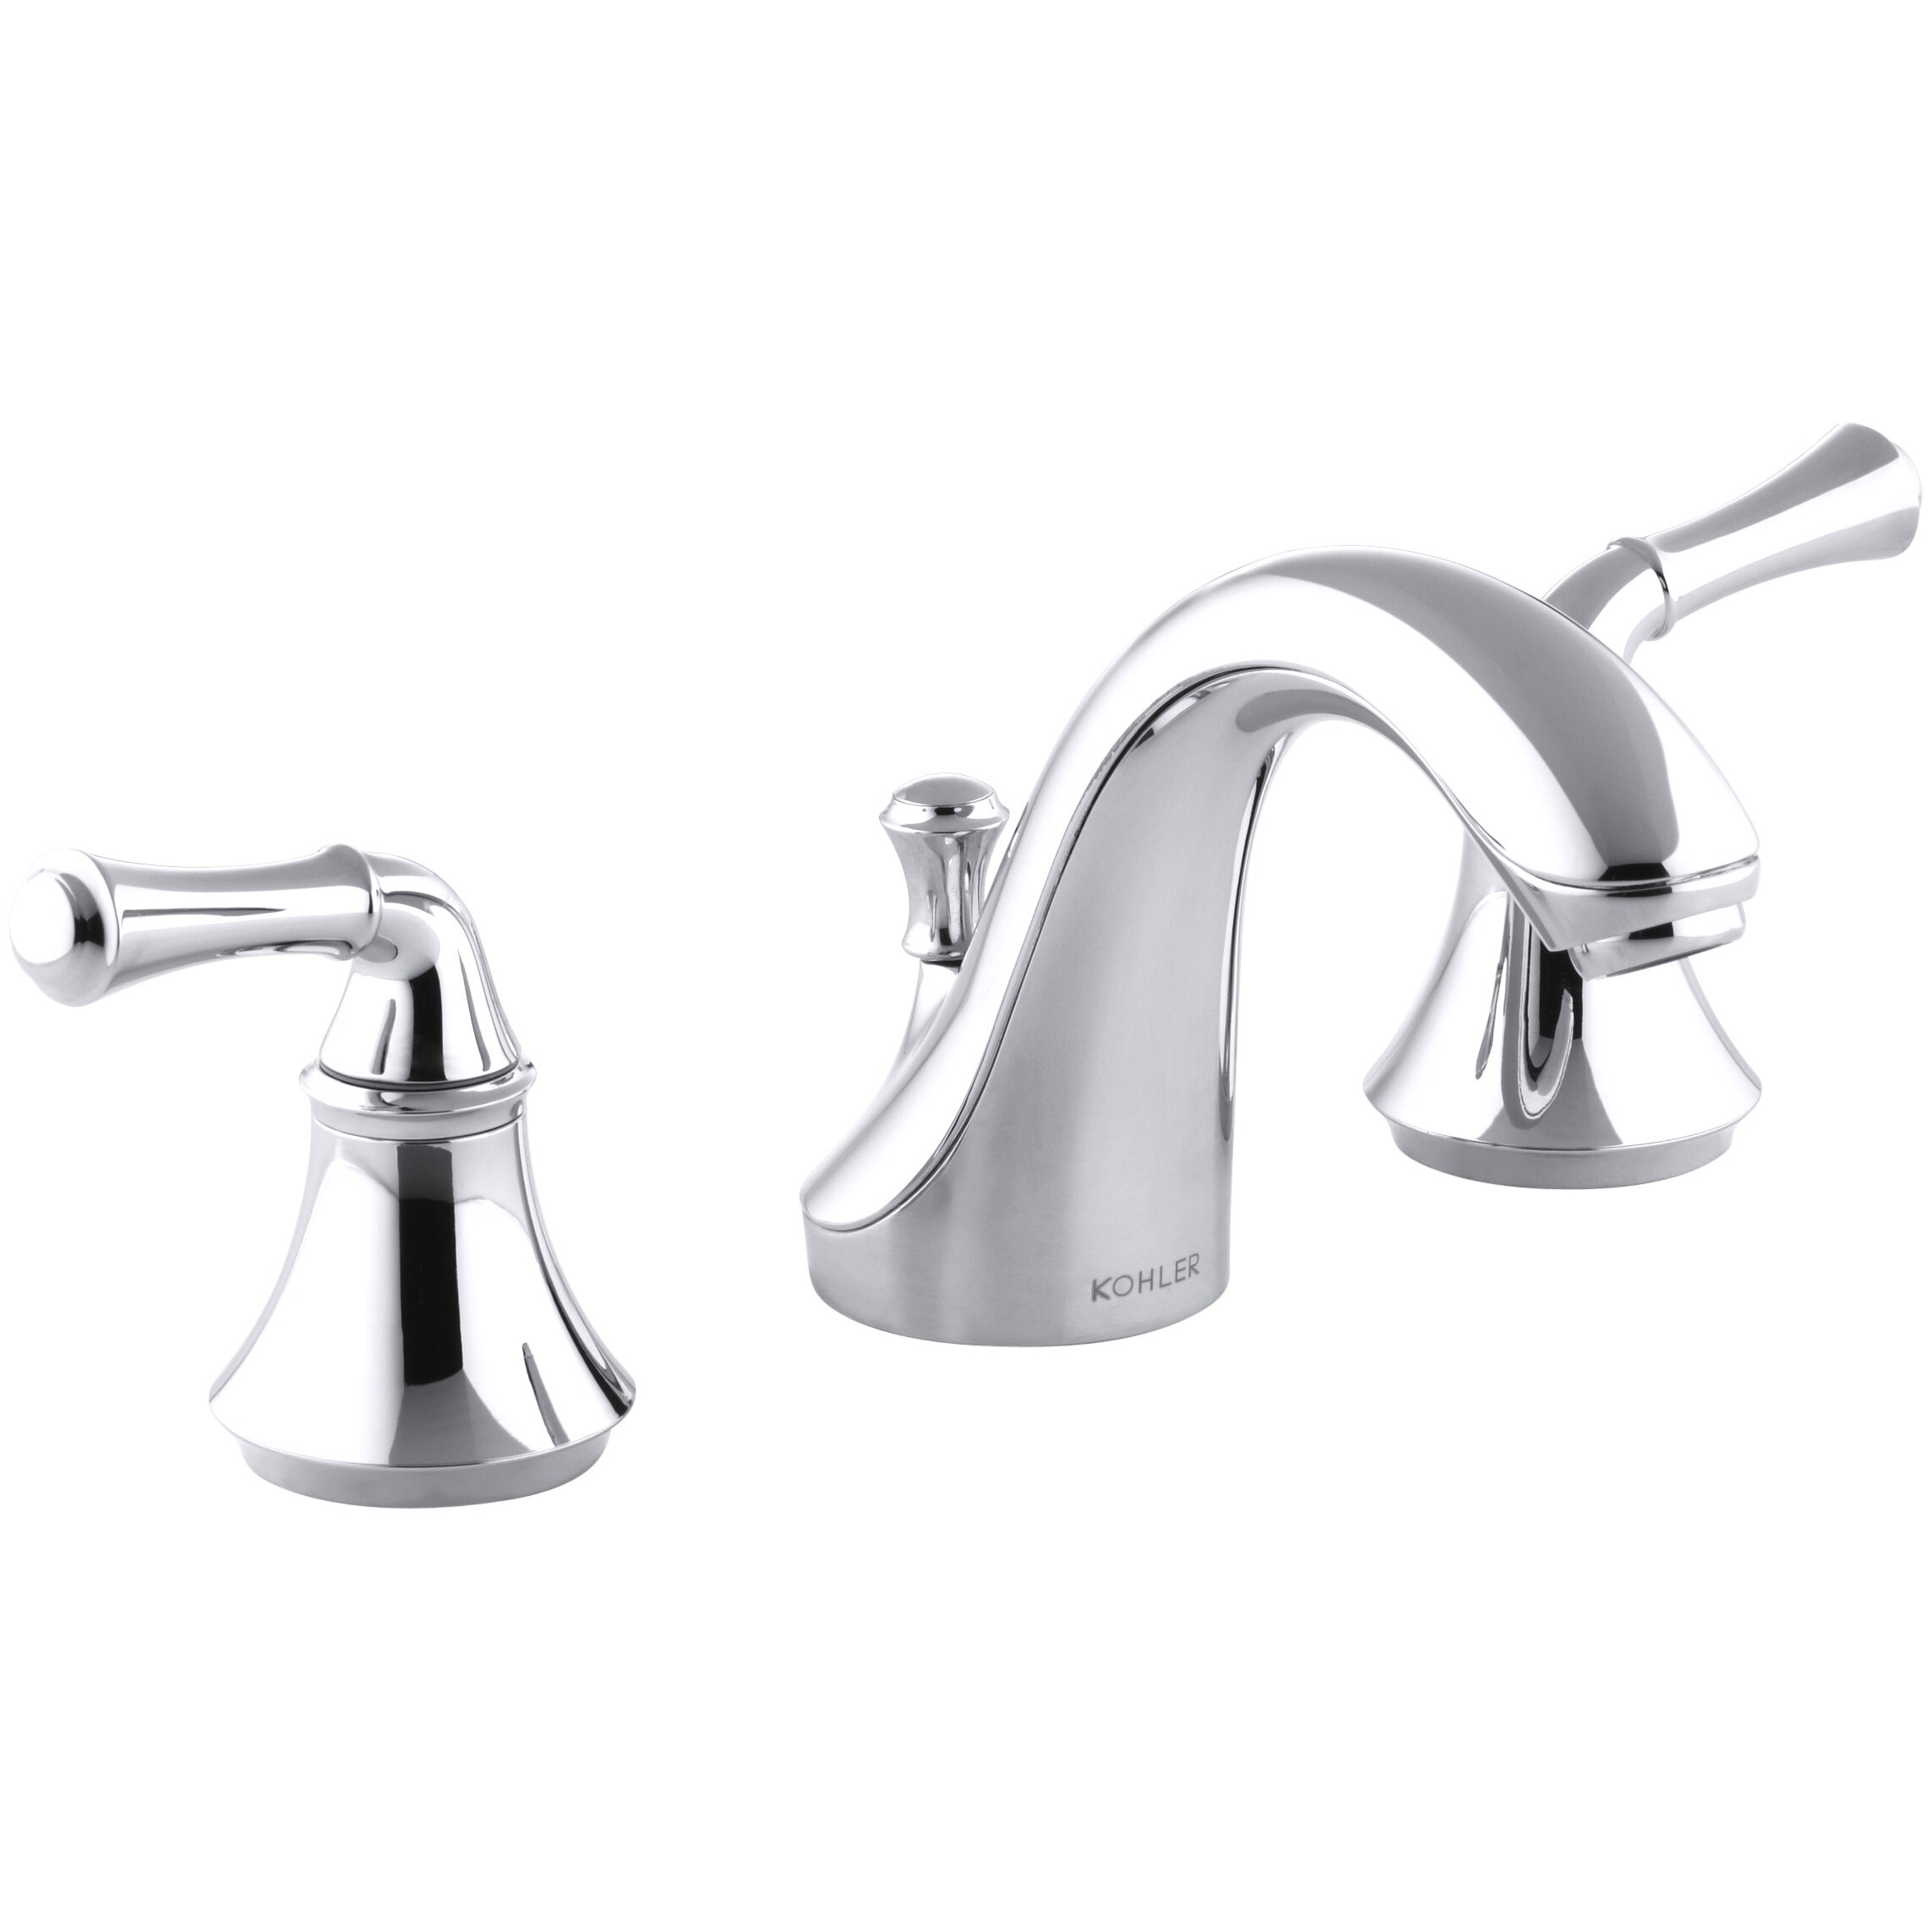 Kohler Faucet Reviews : Kohler Fort? Widespread Bathroom Sink Faucet with Traditional Lever ...